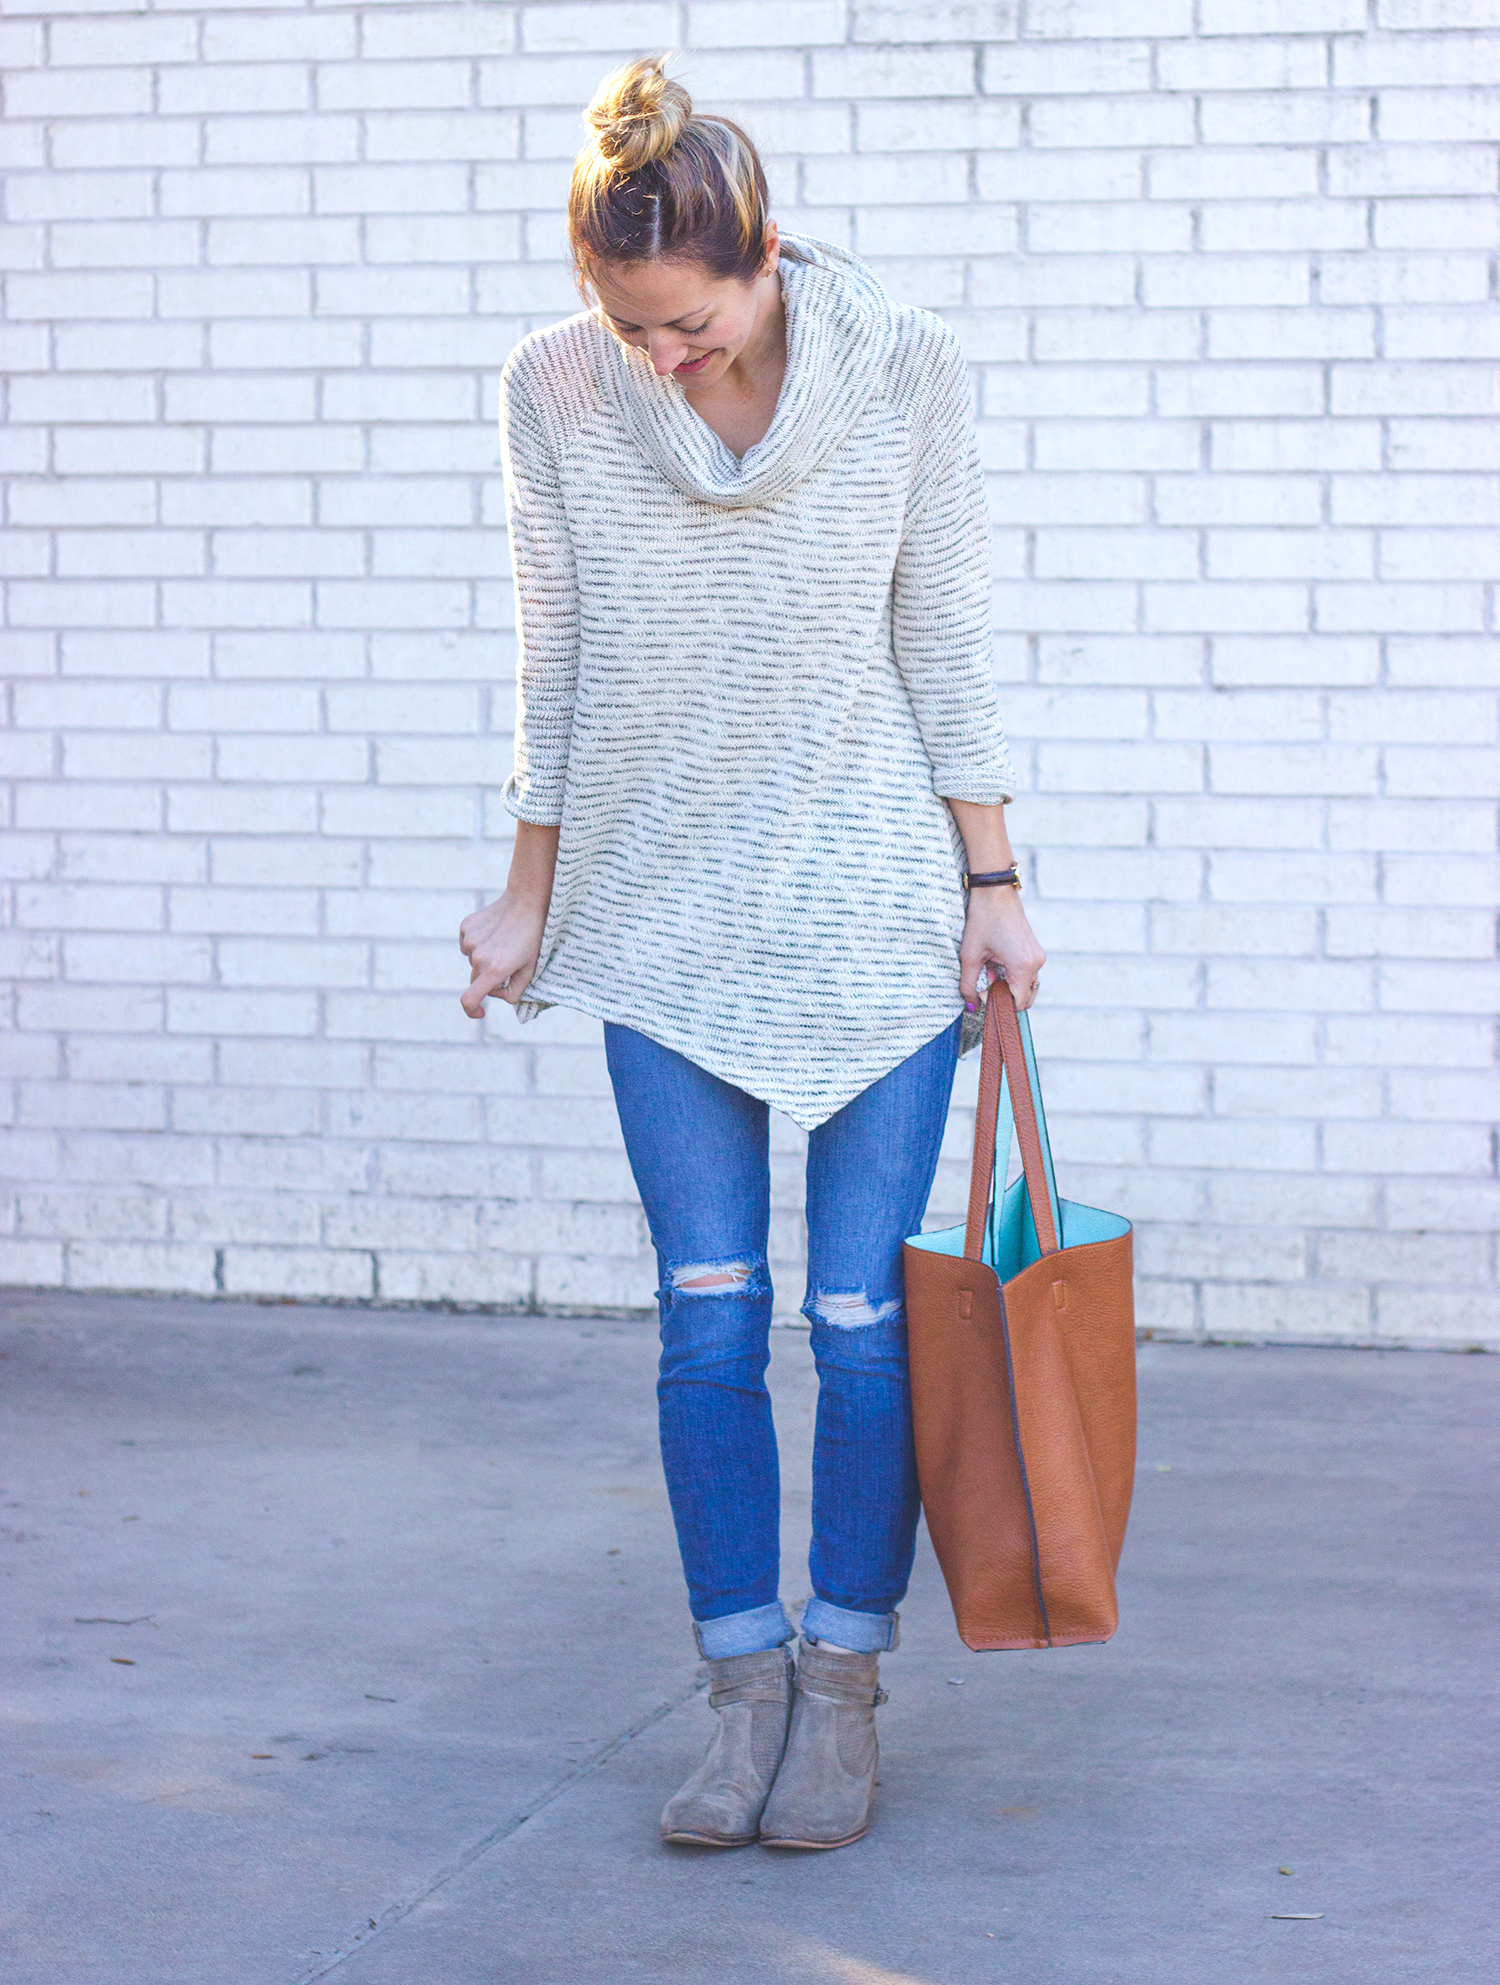 livvyland-blog-olivia-watson-cowl-neck-knit-sweater-striped-seychelles-sanctuary-taupe-booties-joes-distressed-jeans-austin-texas-fashion-blogger-2